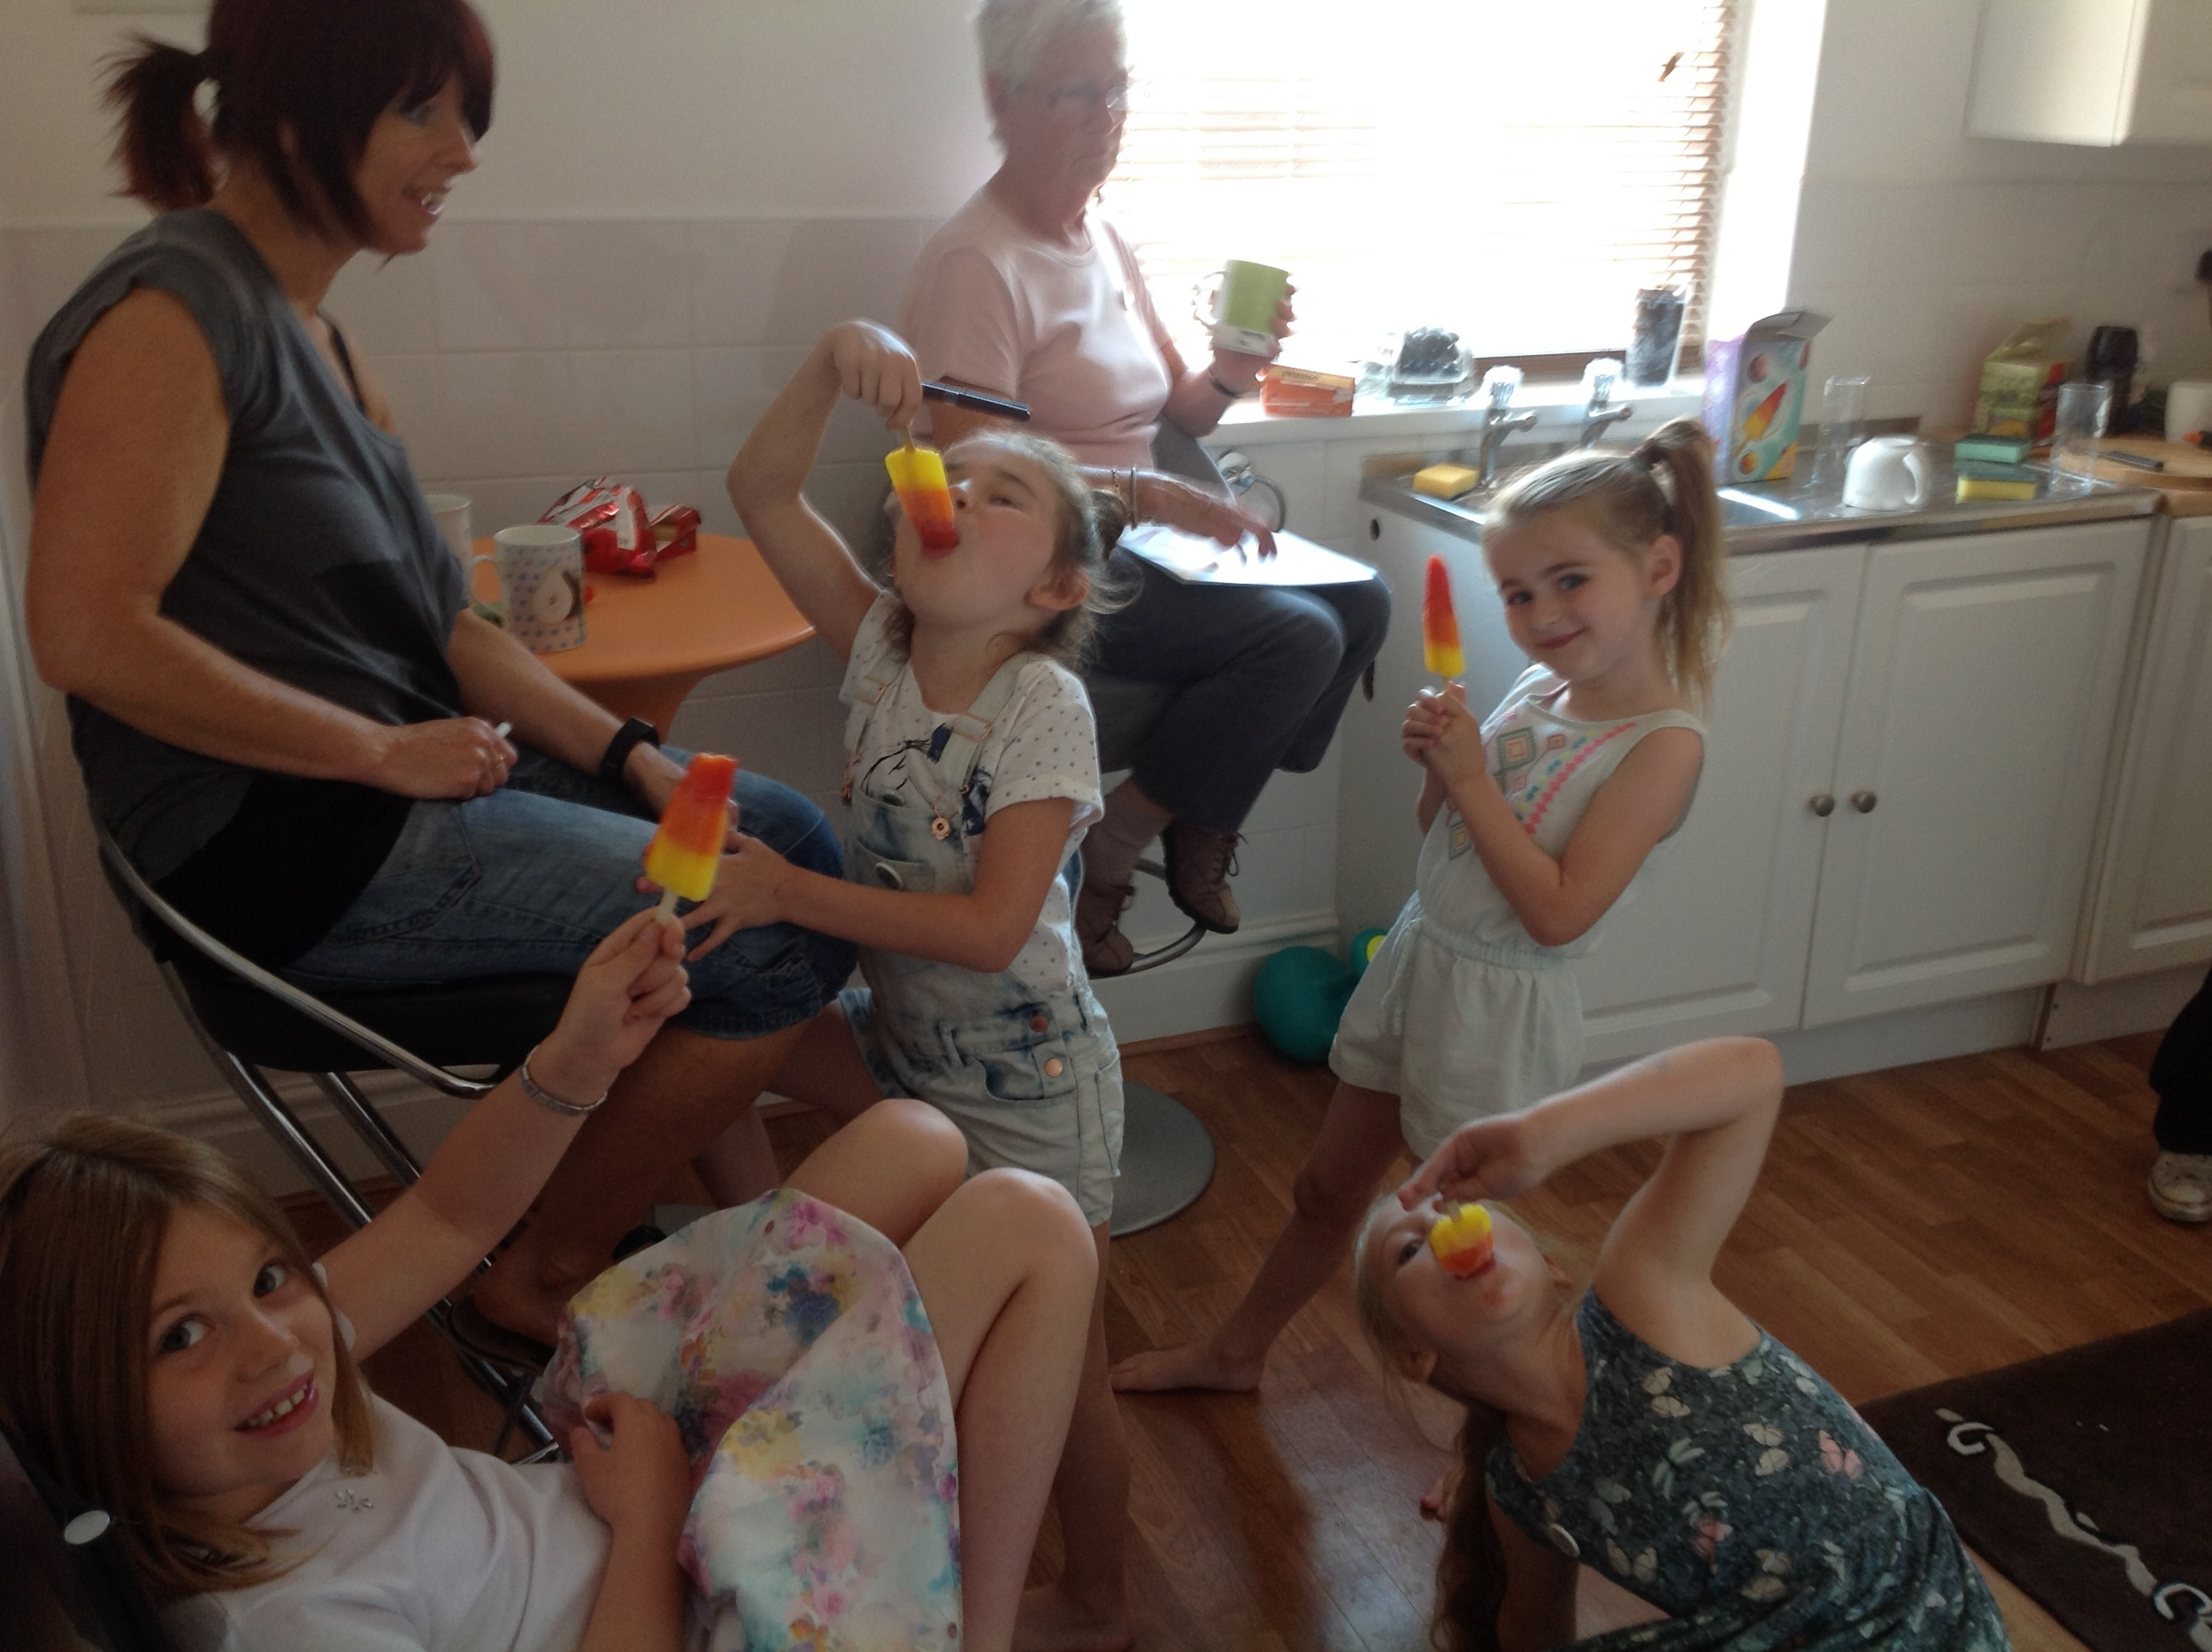 Everyone knows ice lollies help aid Creative Thinking...